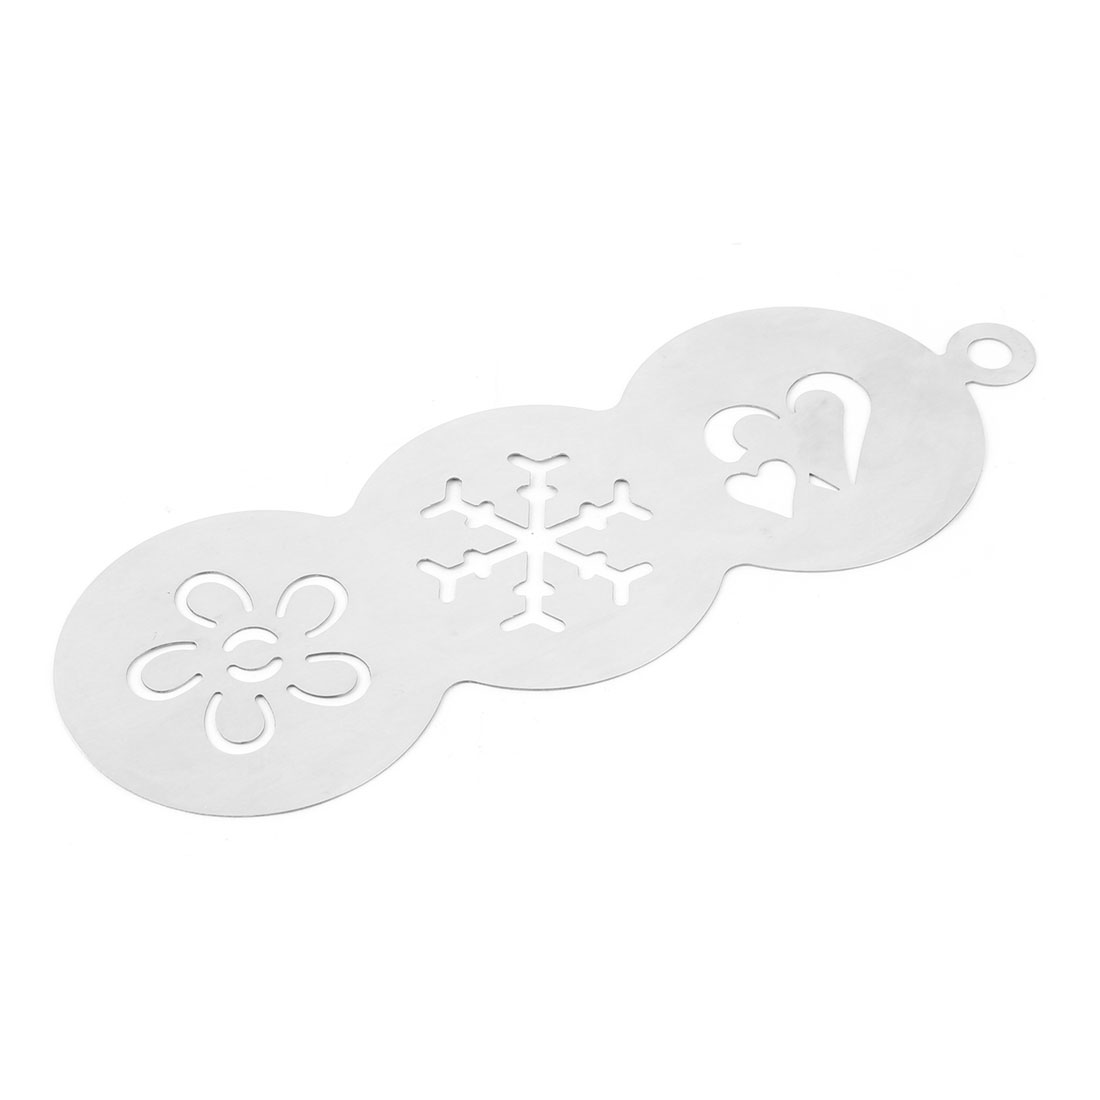 Home Kitchen Metal Baking Stencil Organizer Template Coffee Decorating Tool Mold - image 3 of 4